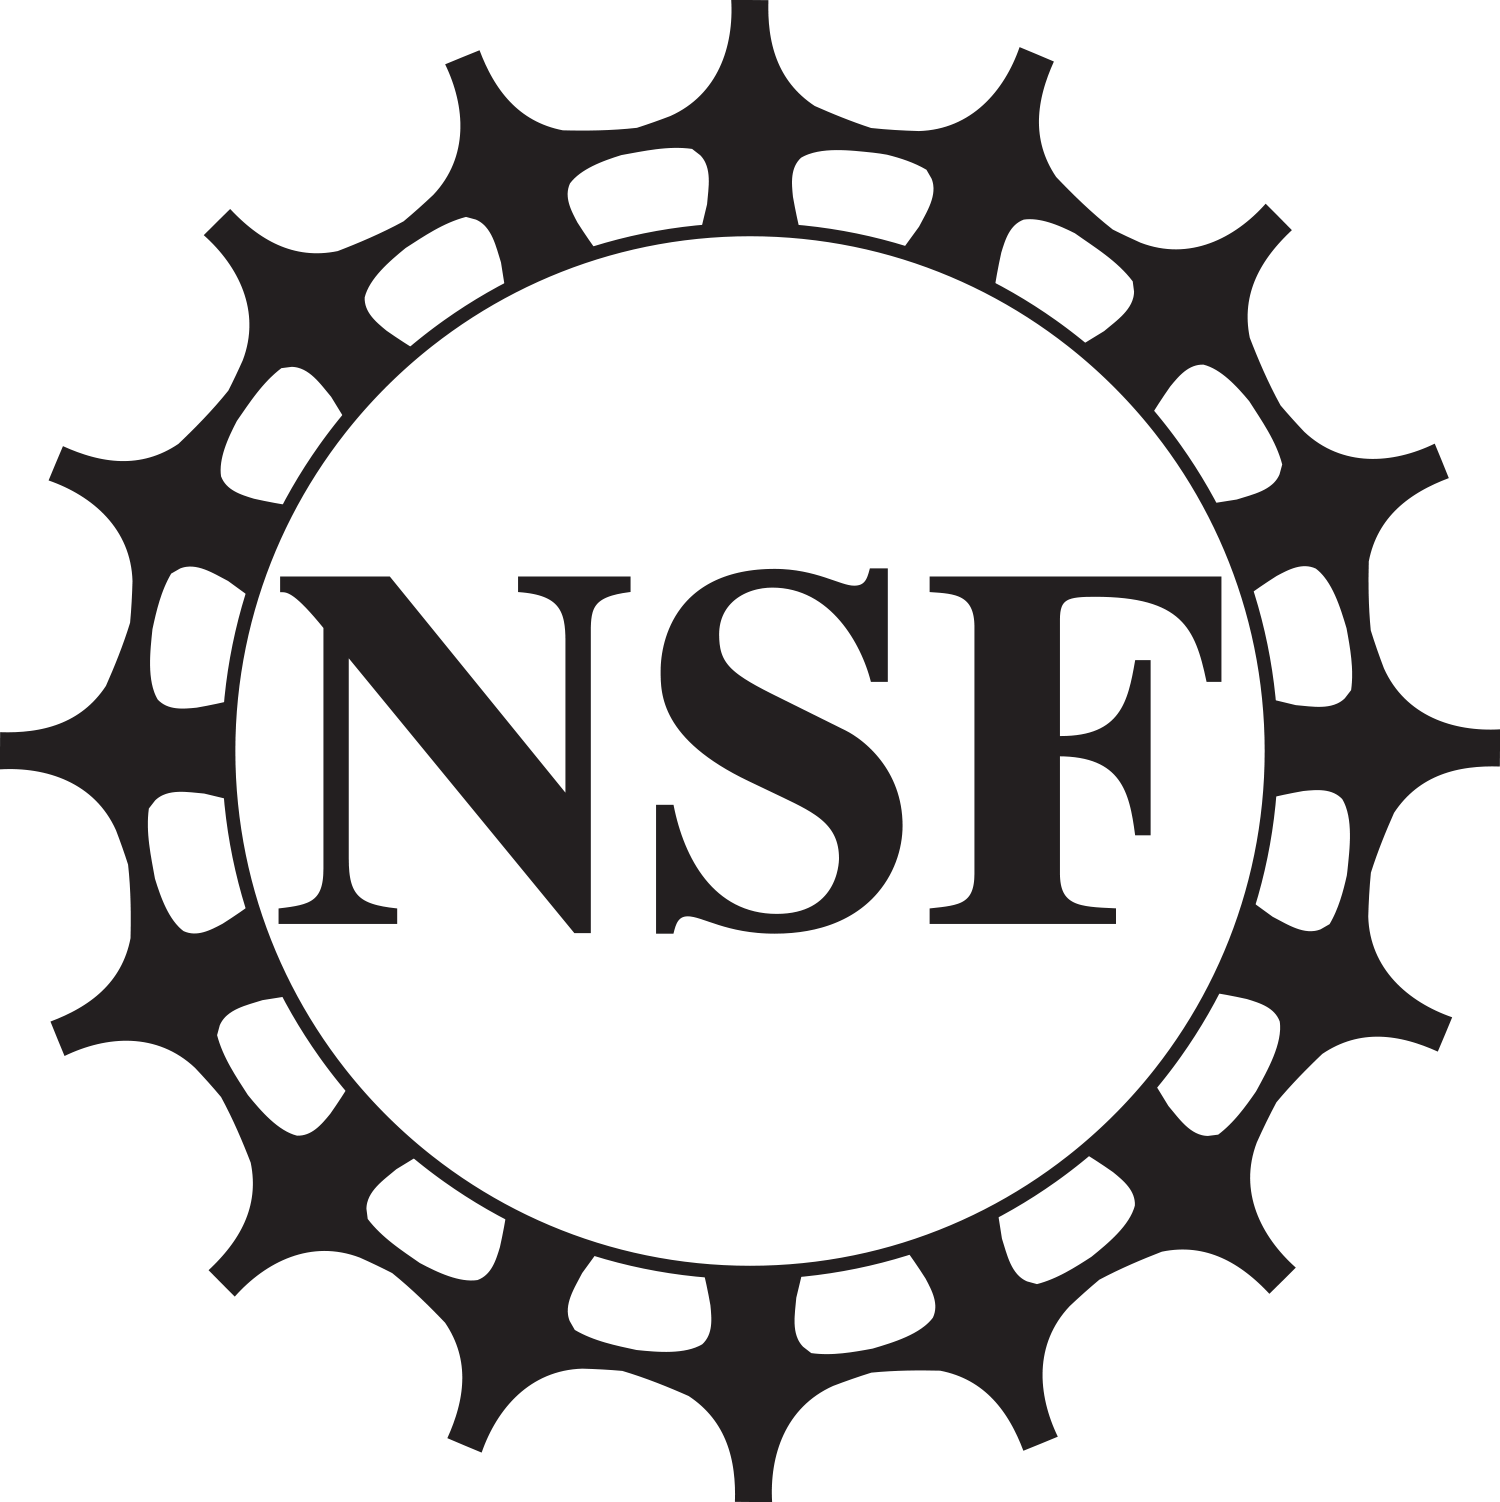 National science foundation logo png. Nsf all black bitmap